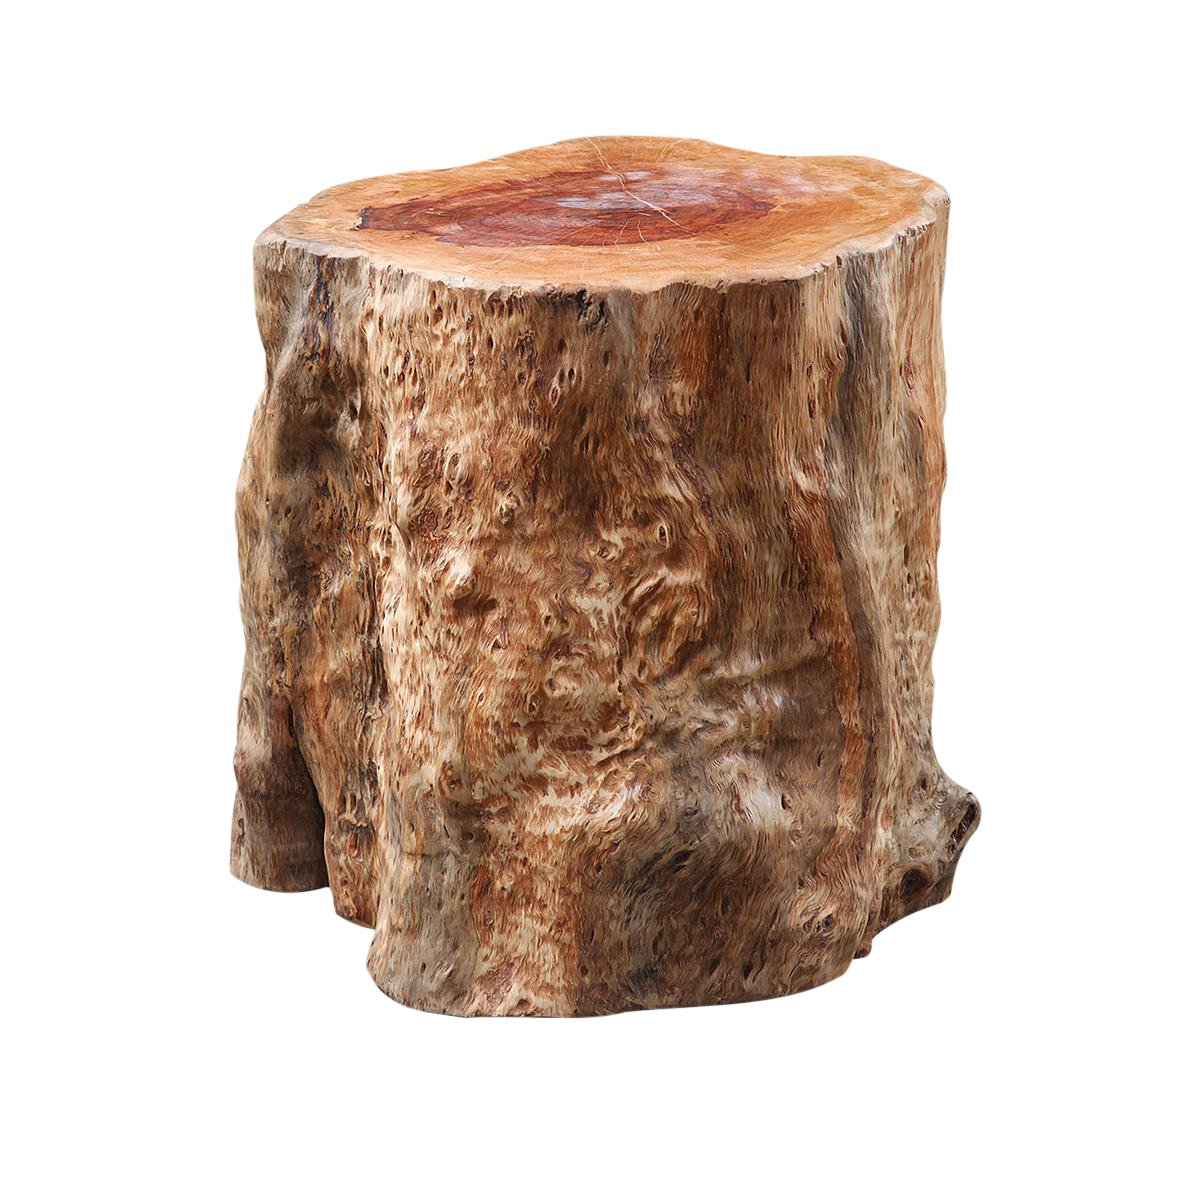 tree stump side table chairish wood accent battery operated touch lamps metal small entry console lucite coffee cream colored tables black cube end dining room chairs edmonton